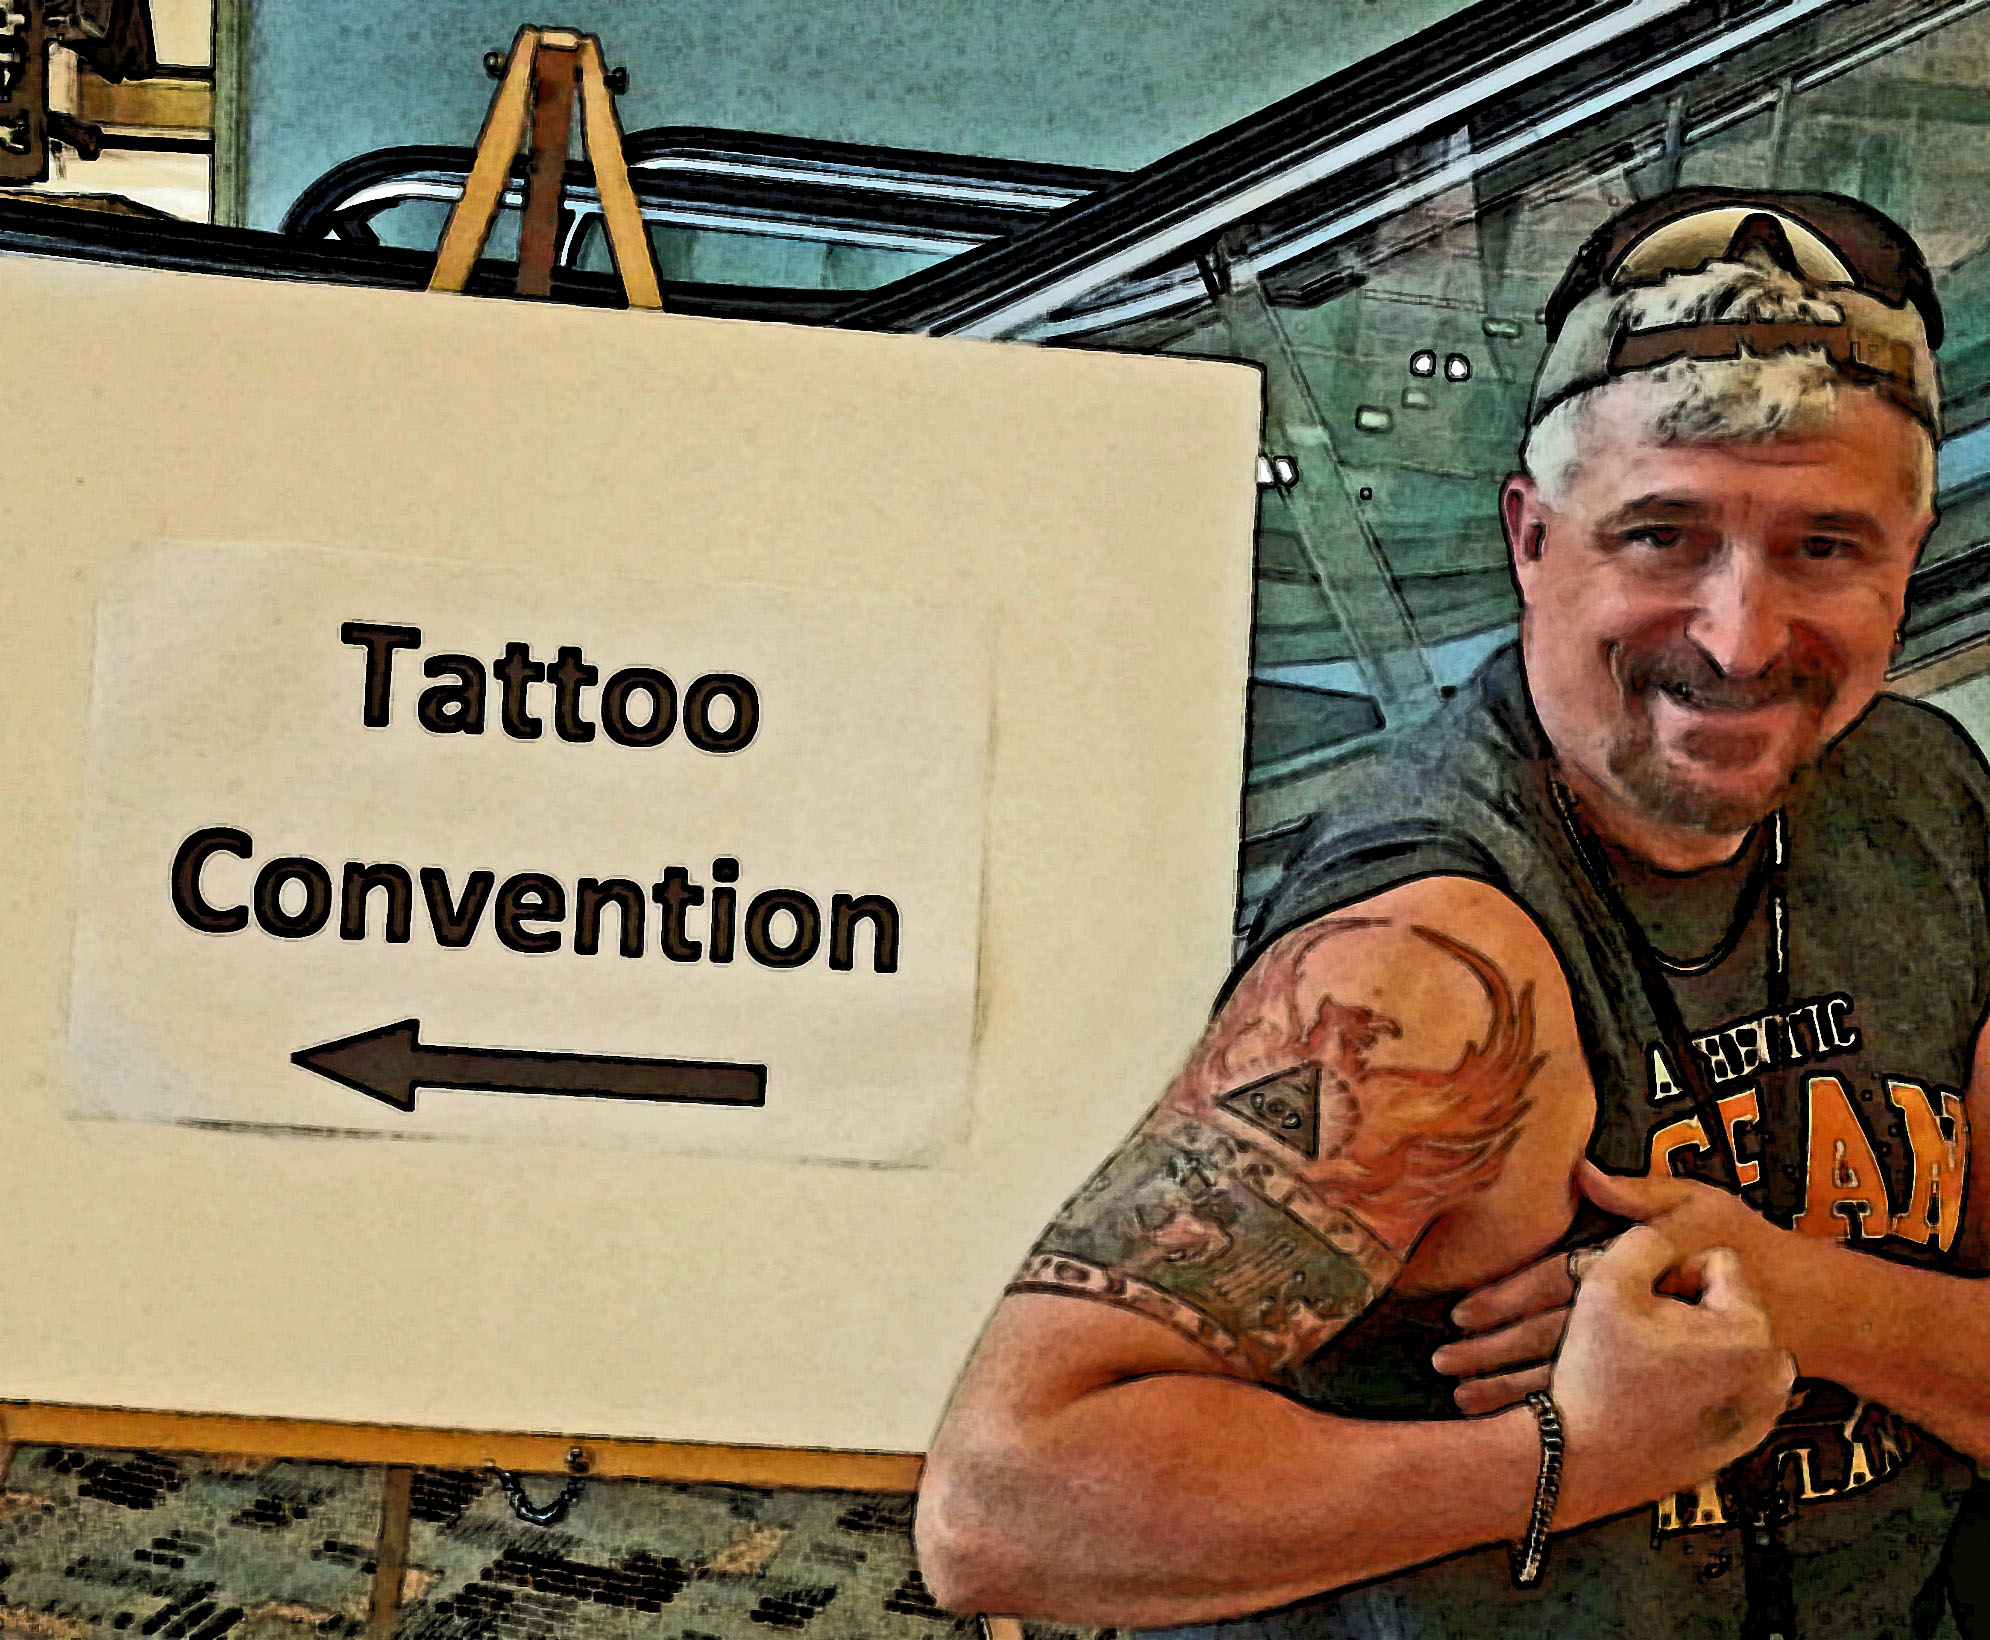 Me at a Tattoo Convention